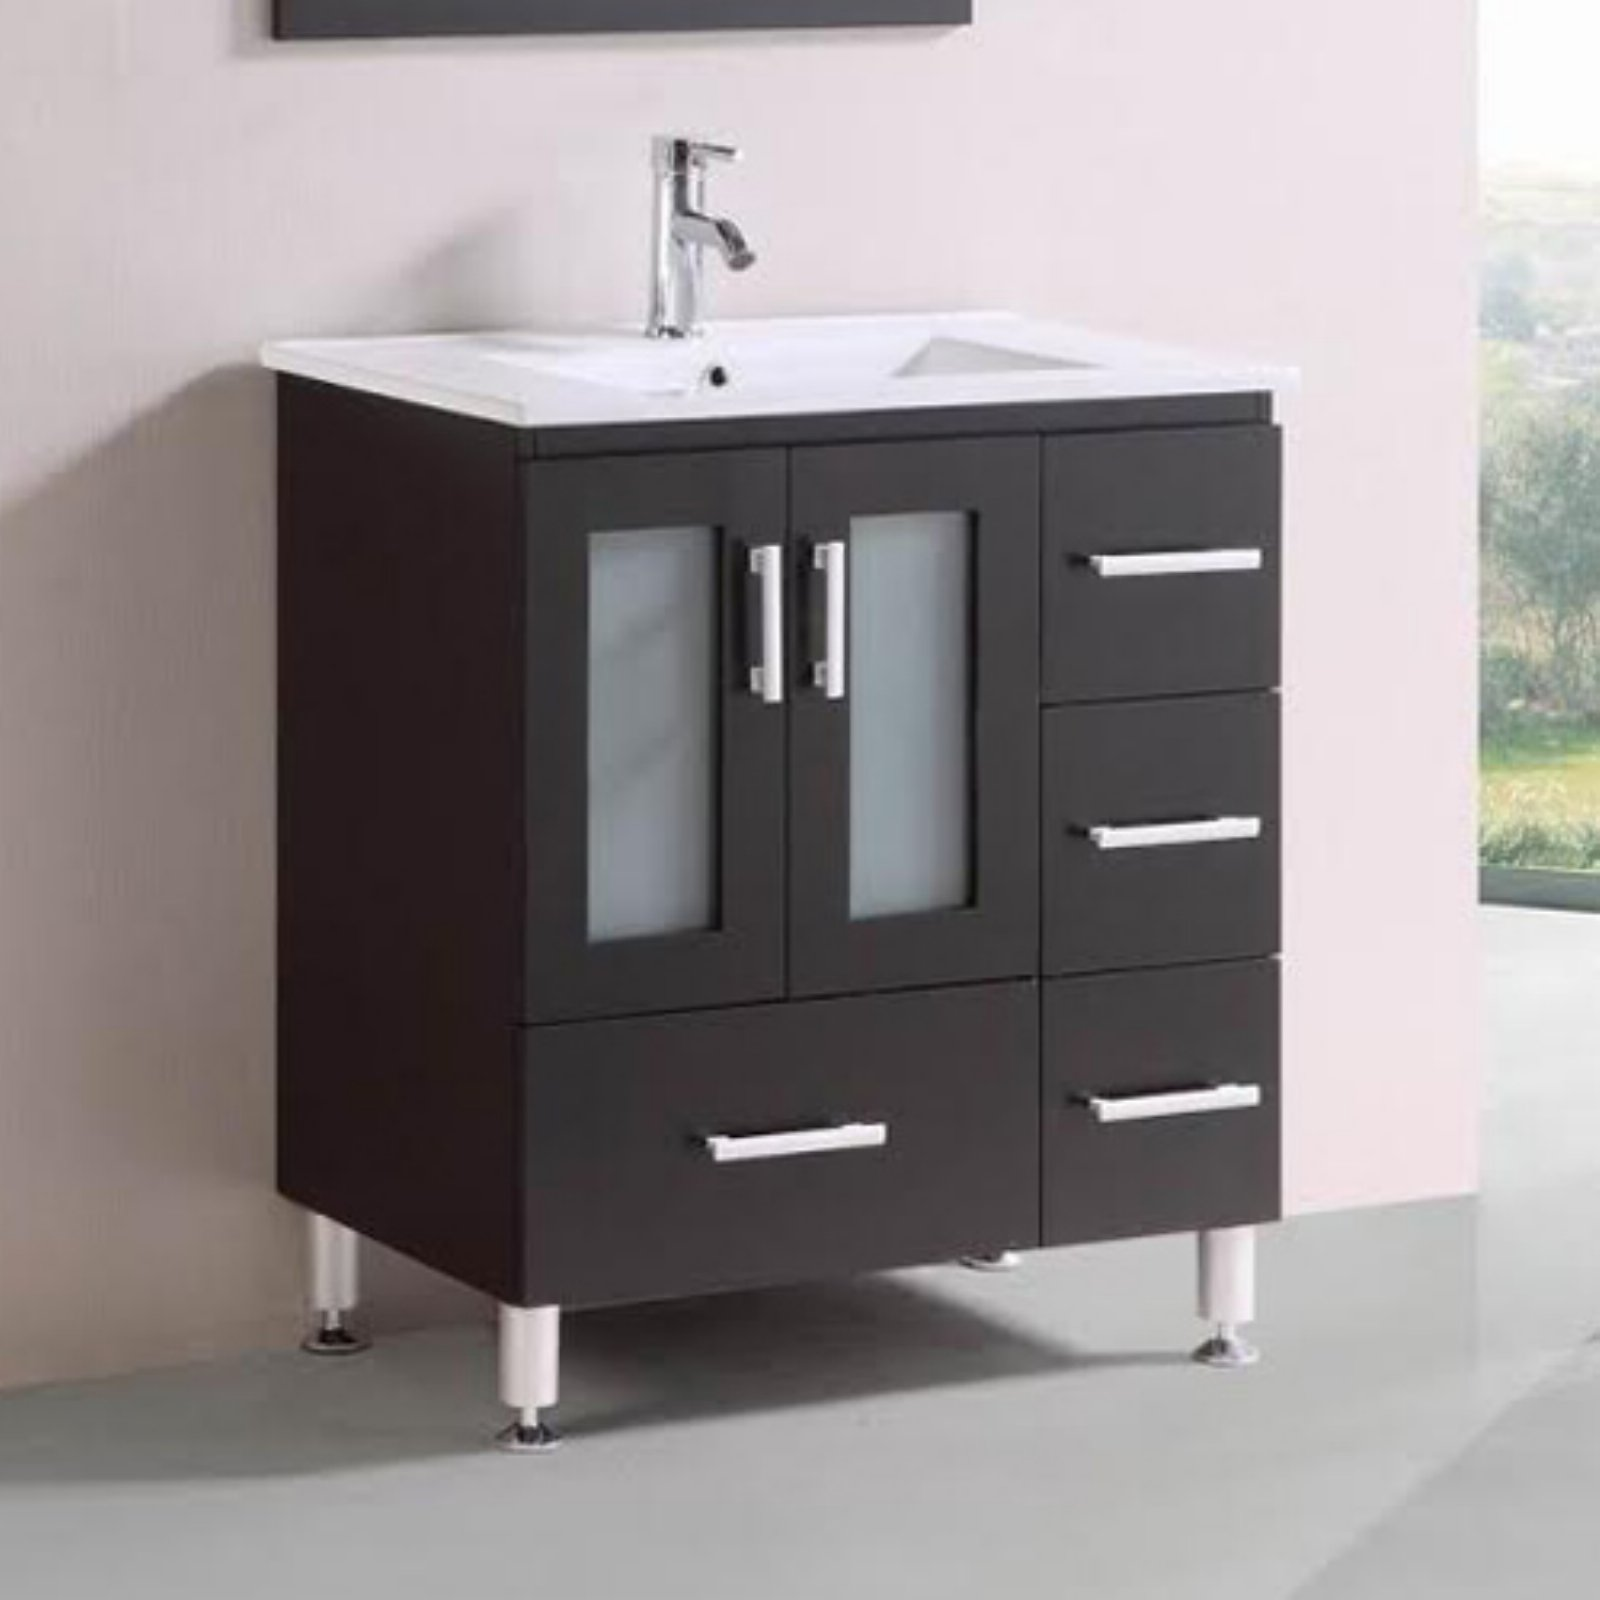 Belvedere 30 in. Modern Freestanding Single Bathroom Vanity by Overstock